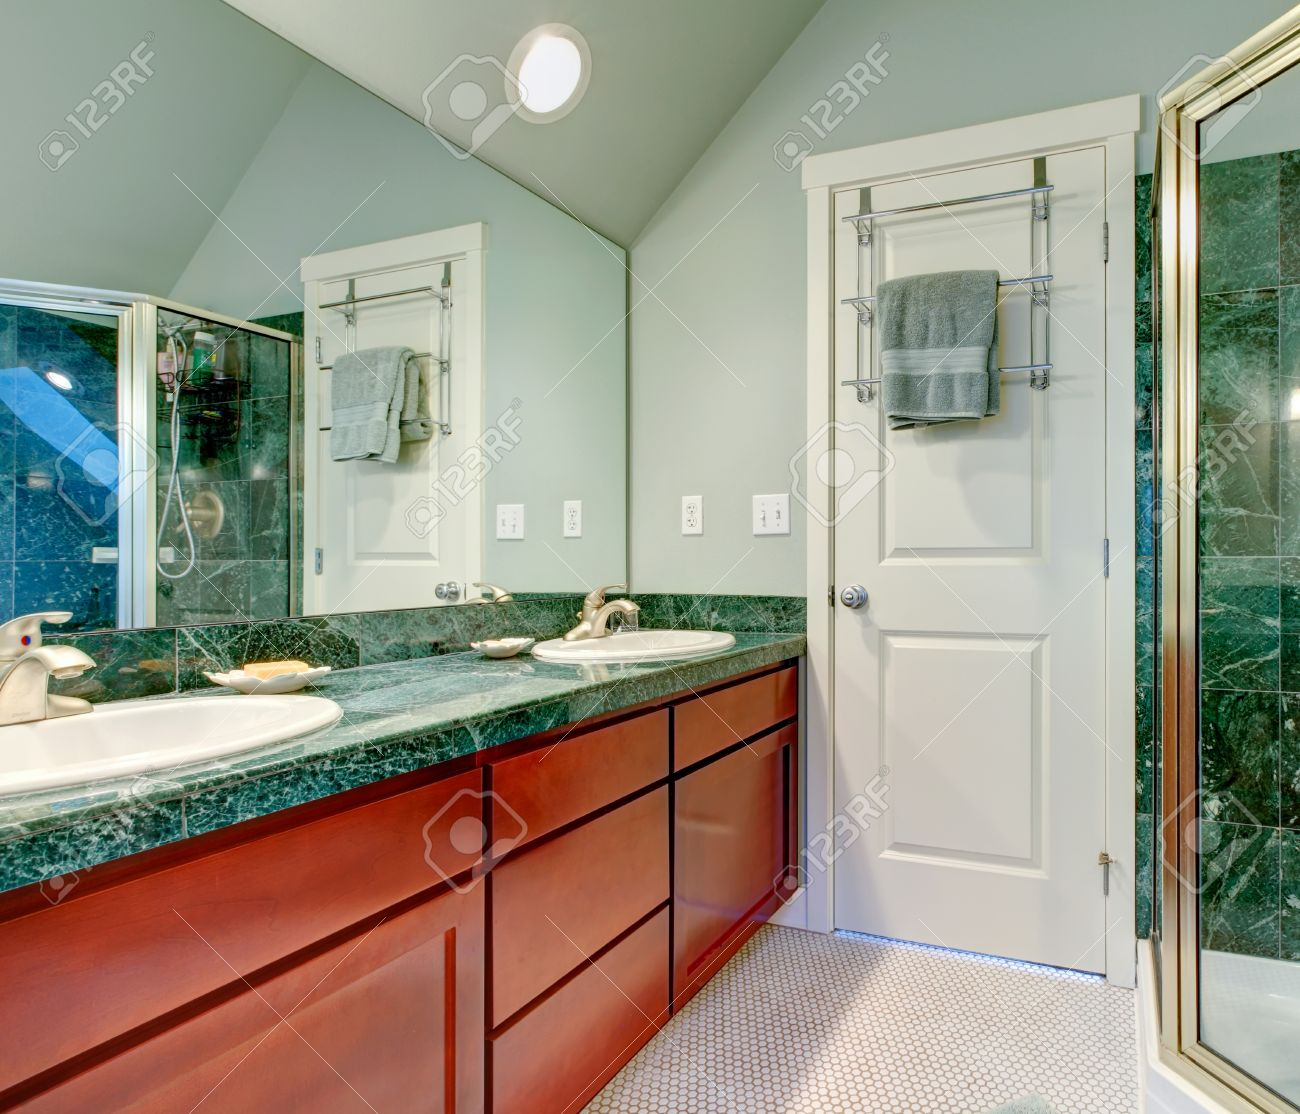 Bathroom Lighting Vaulted Ceiling light green bathroom with vaulted ceiling, tile floor and brown